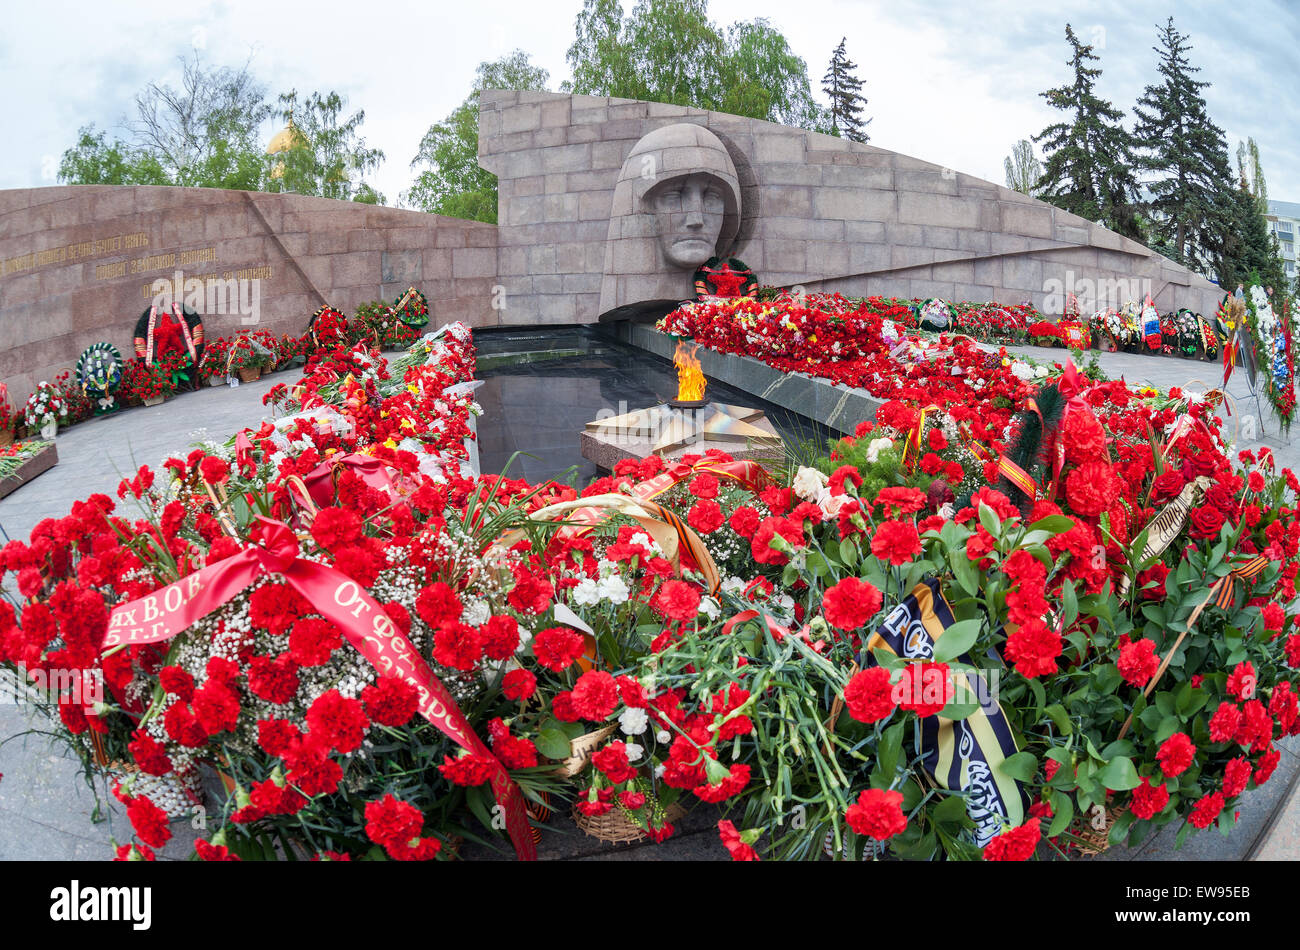 Eternal flame and flowers in memory of the Victory in the Great Patriotic War - Stock Image